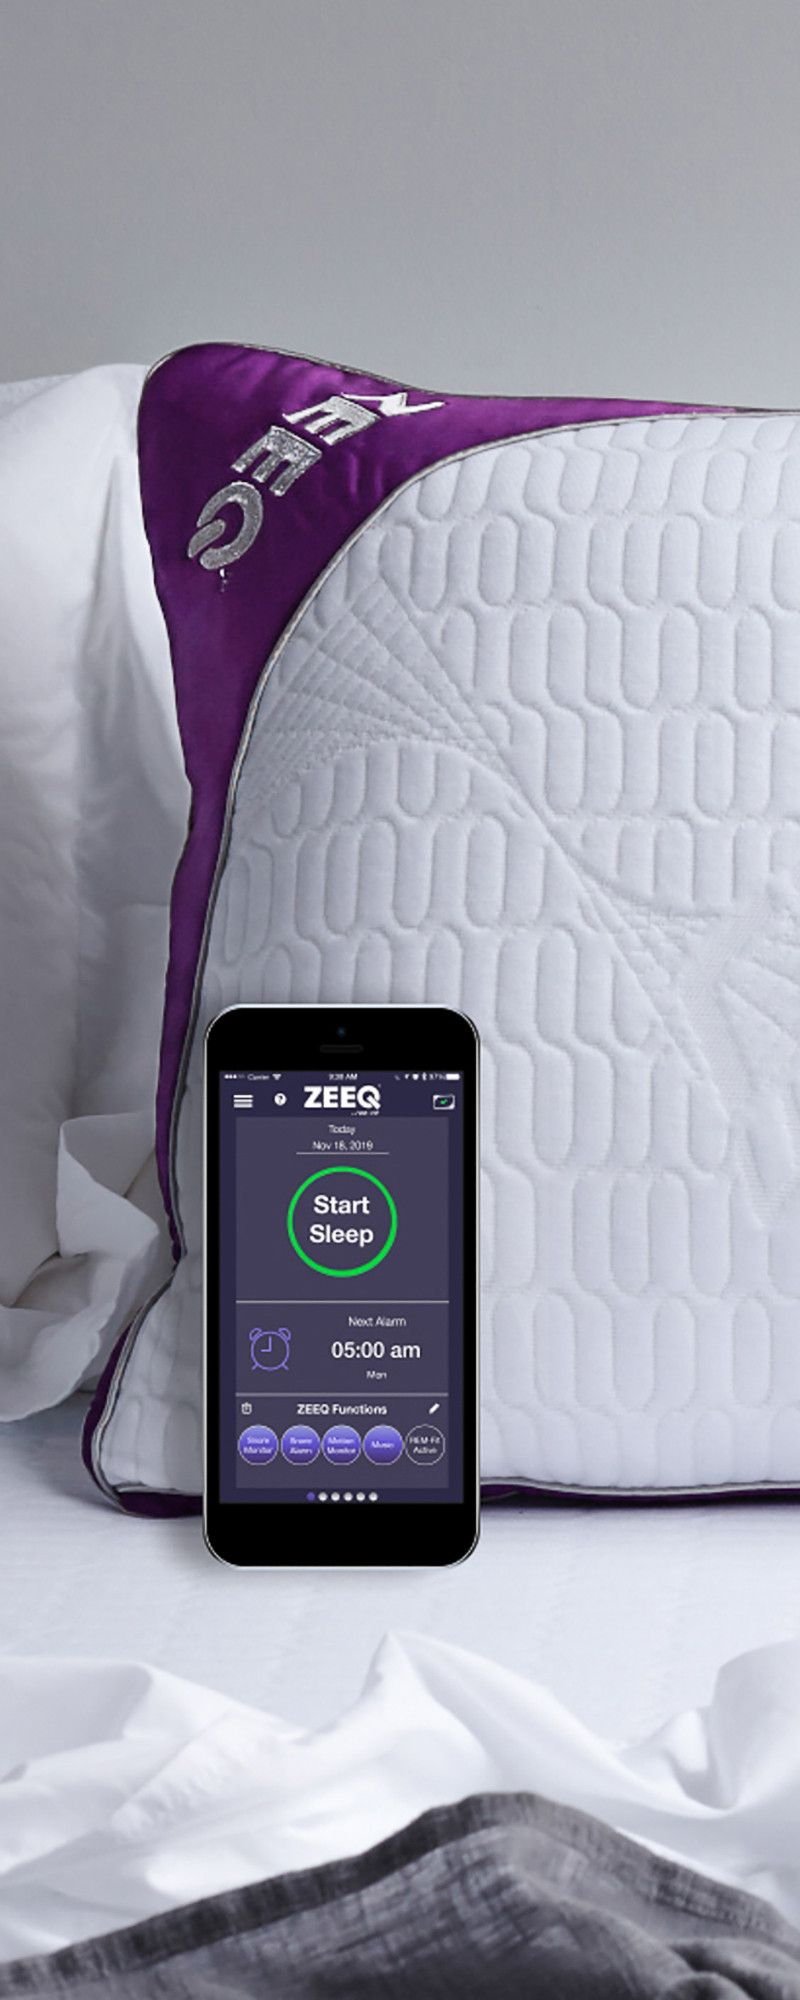 Build better sleep habits with this pillow. Inside comfy